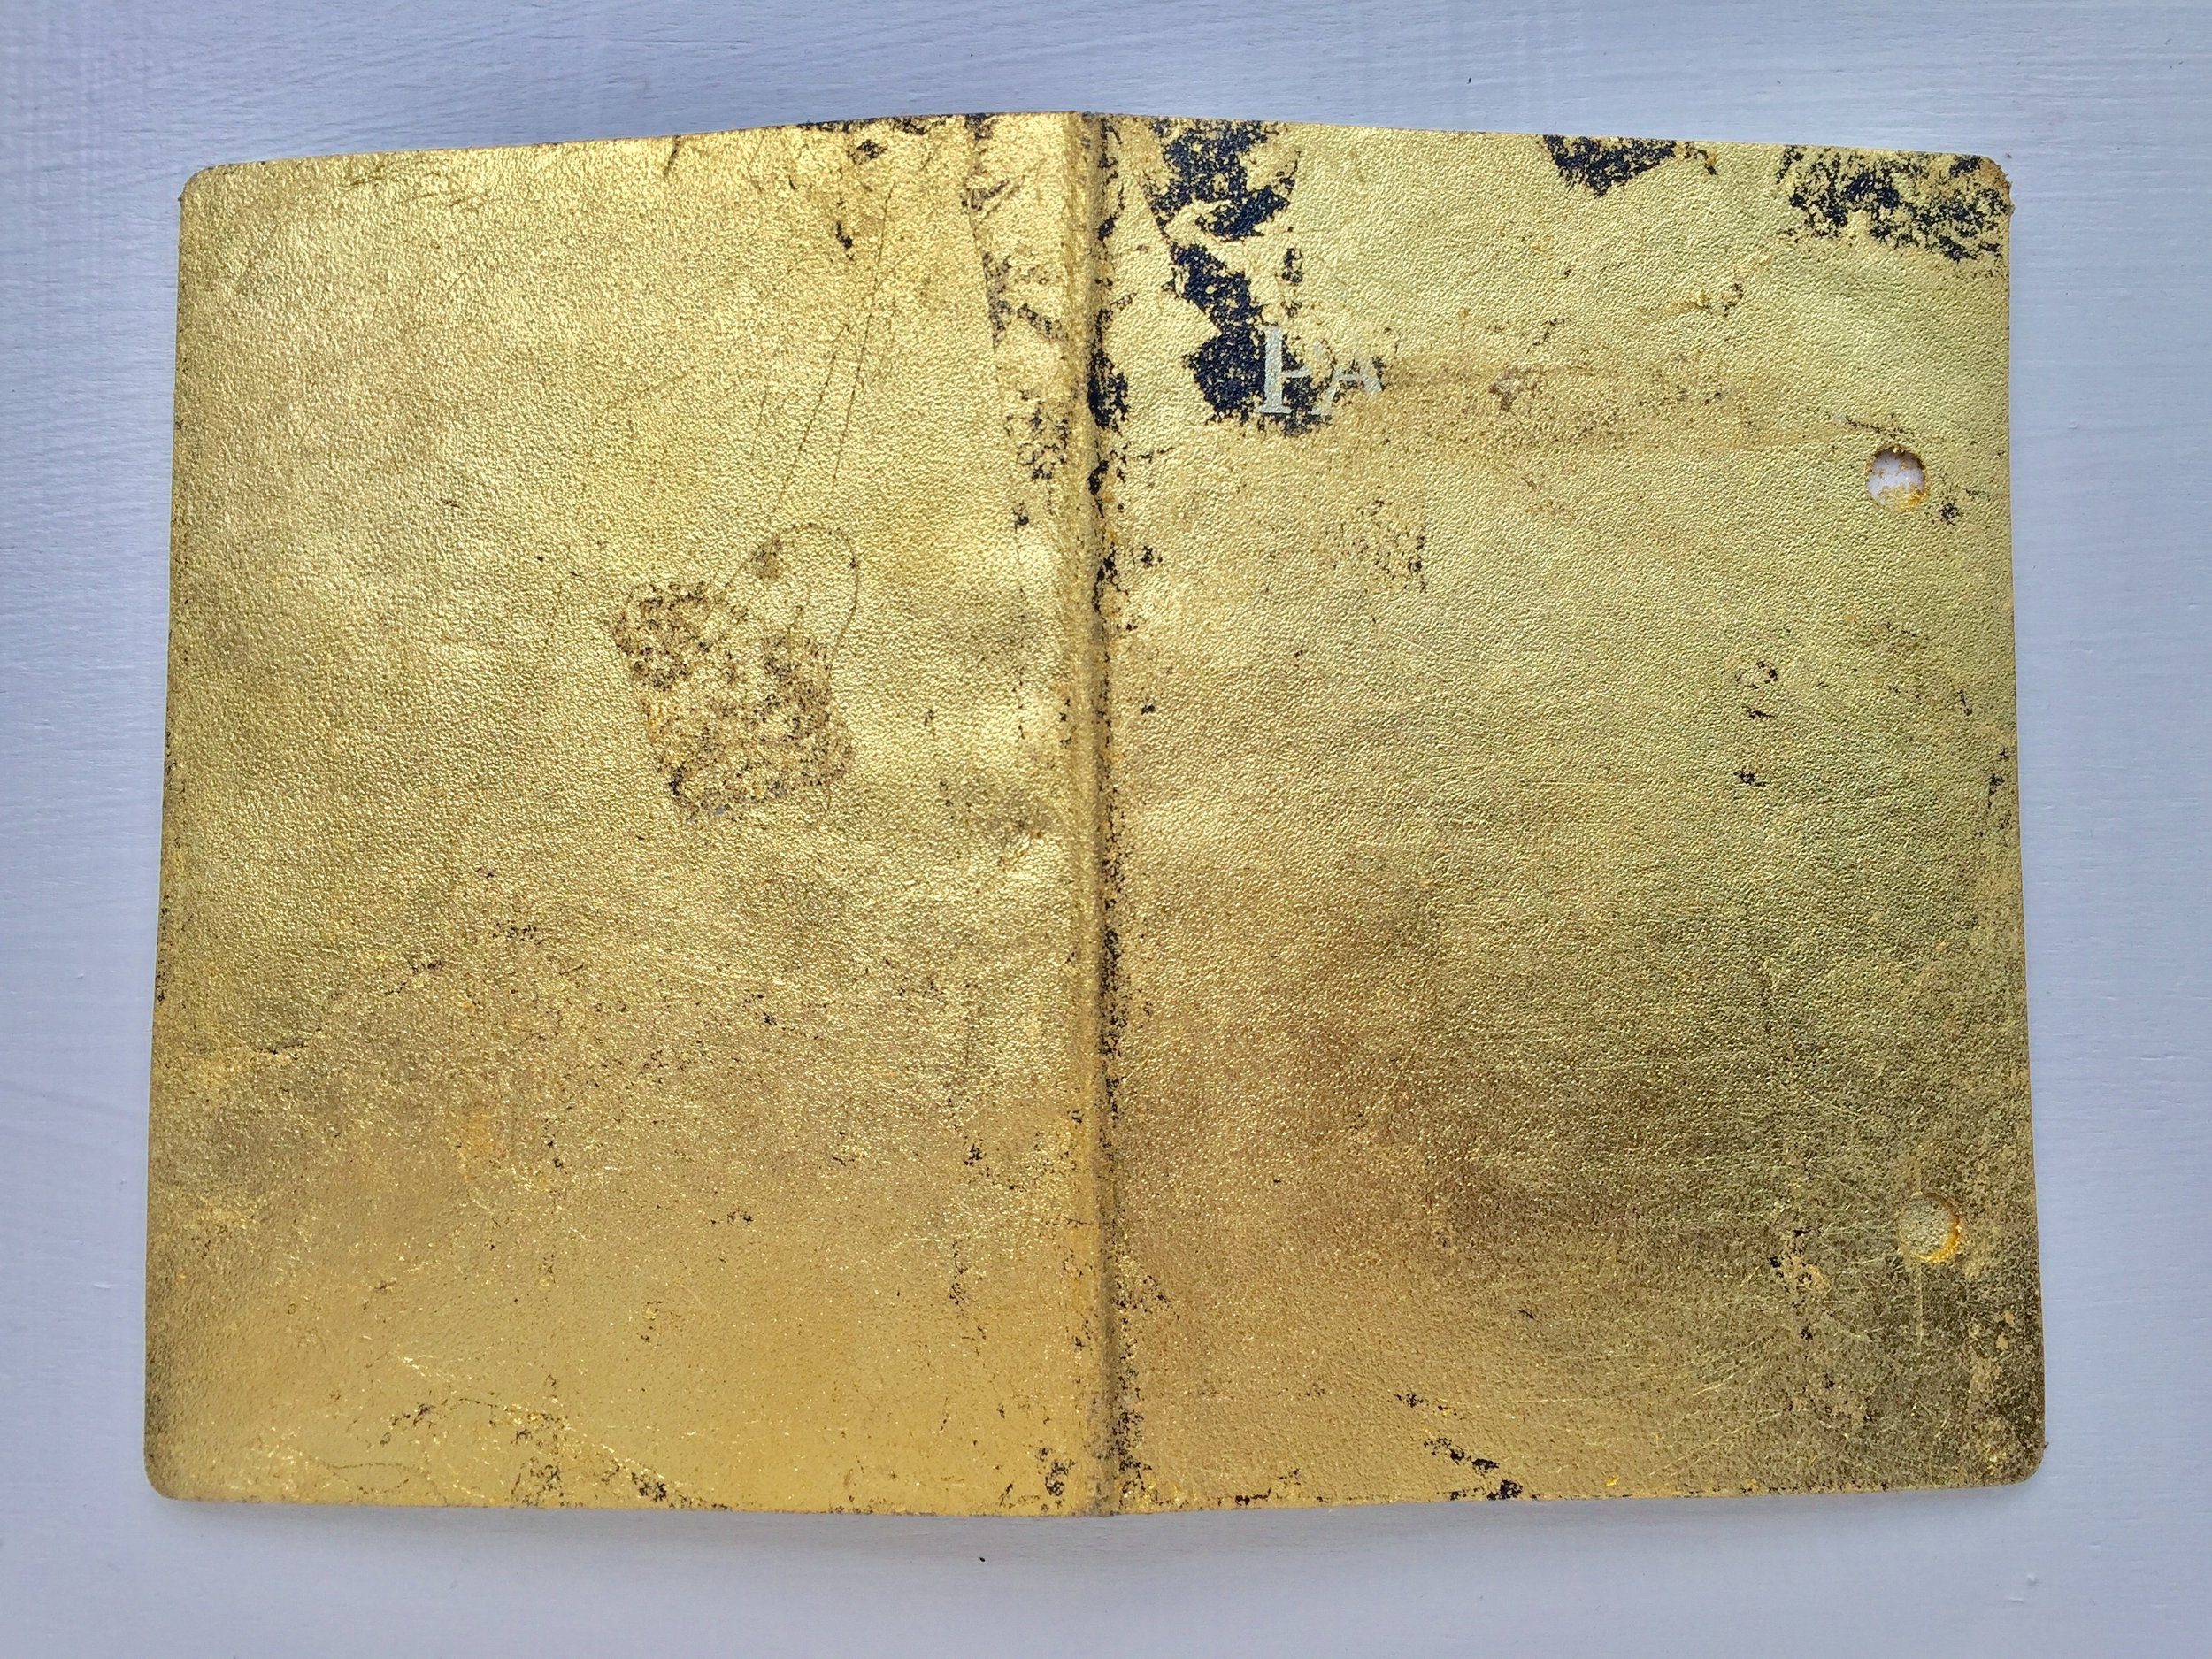 Cover1_golden passport.jpg